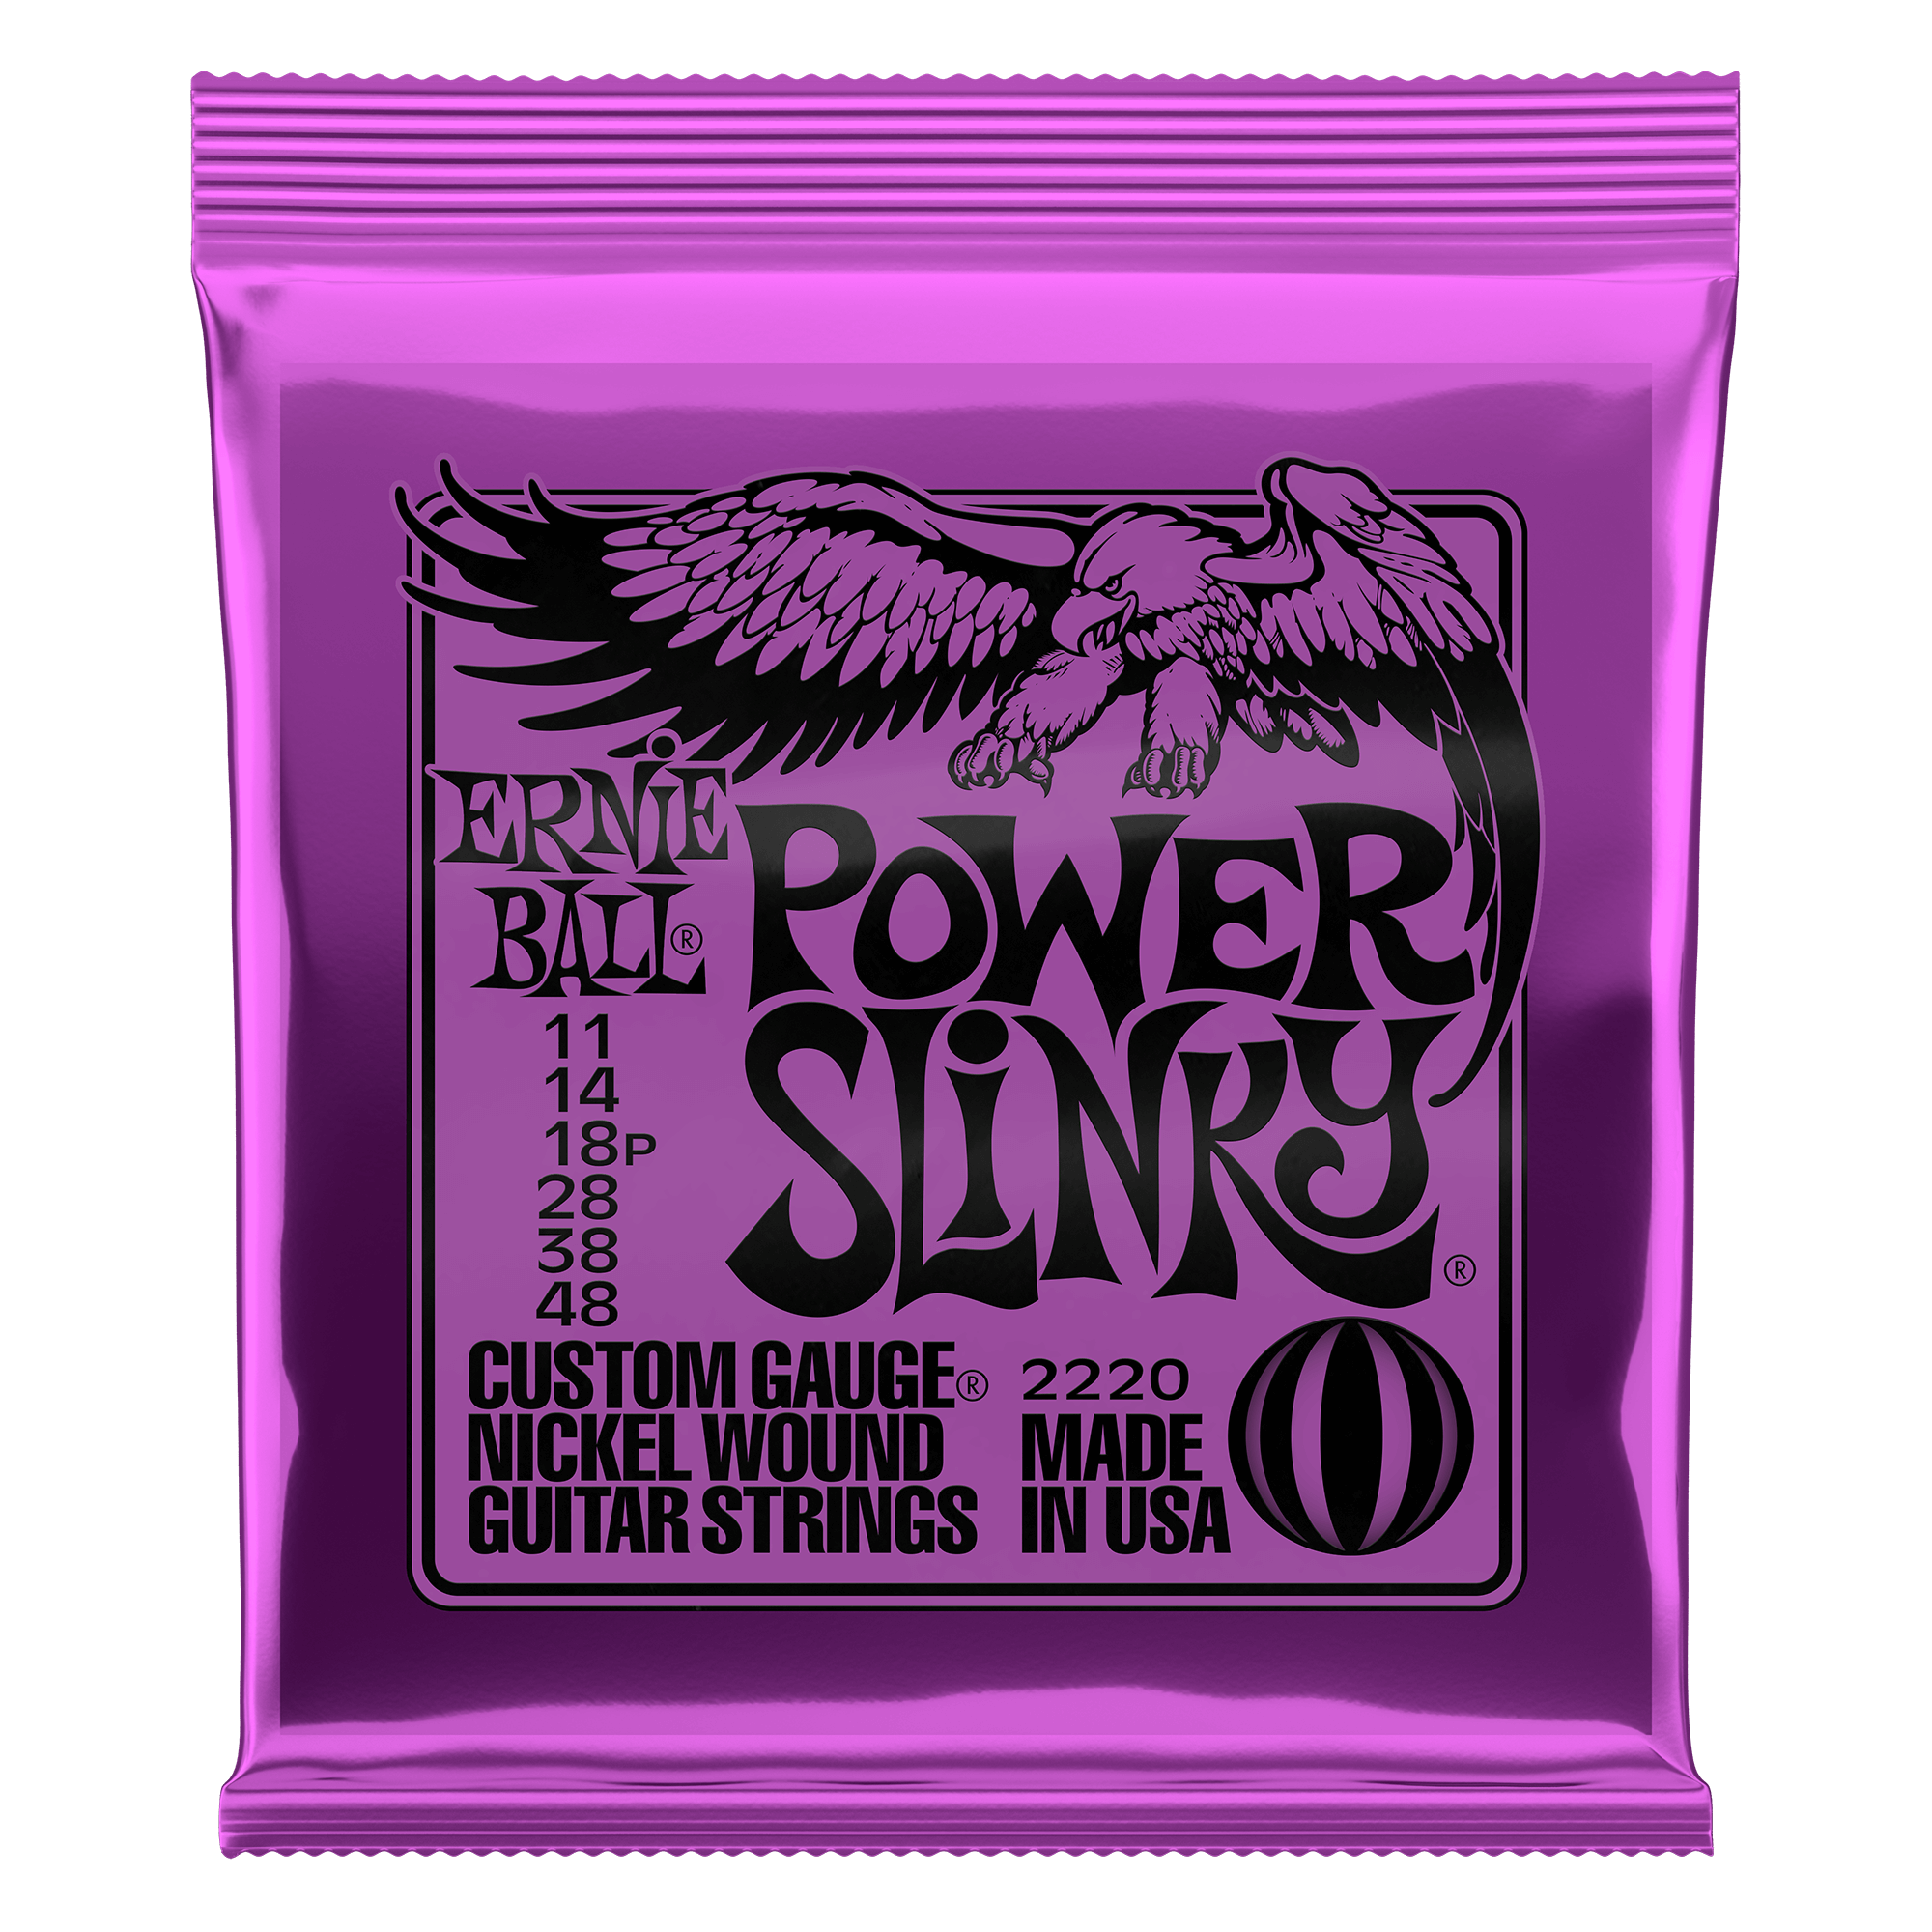 Ernie Ball P02220 Power Slinky 3 Sets Pack Electric Guitar Strings 11-48